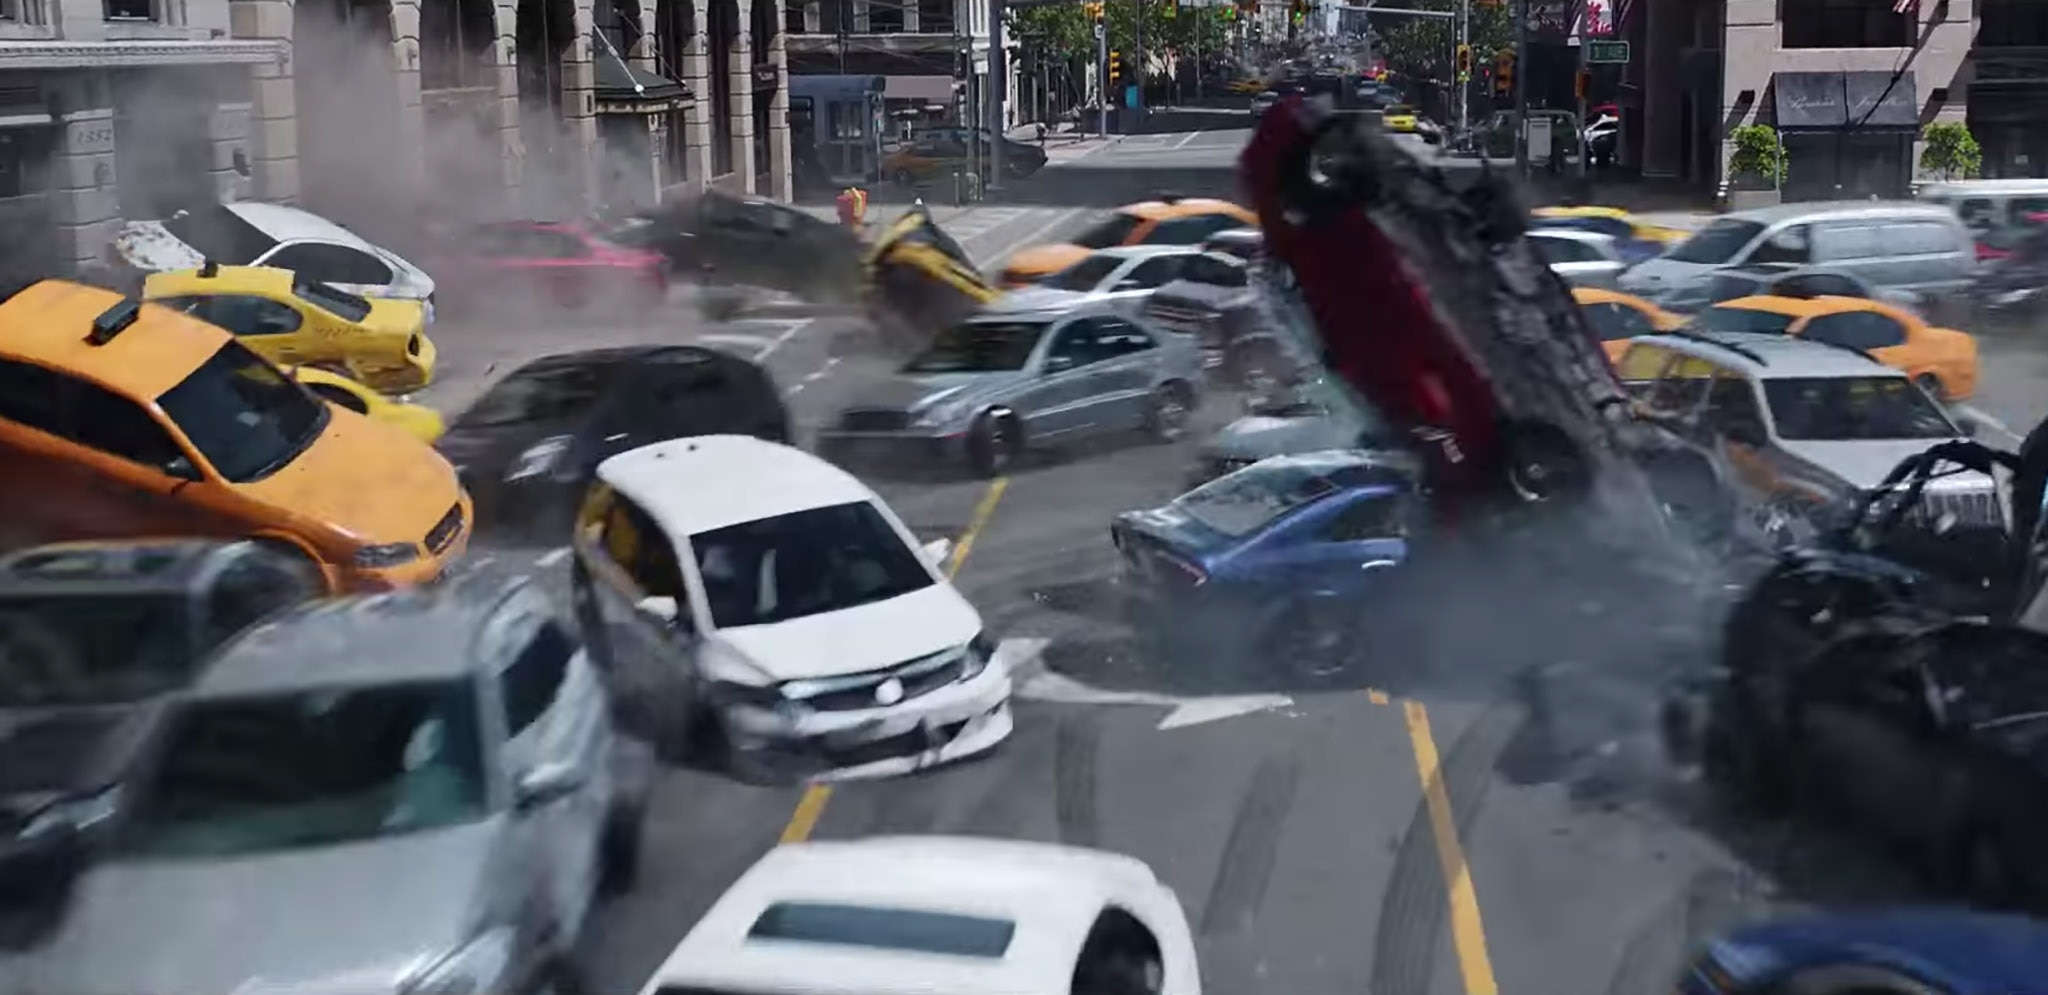 """Watch Hacked Cars Go Ballistic in New """"Fast and Furious 8 ..."""